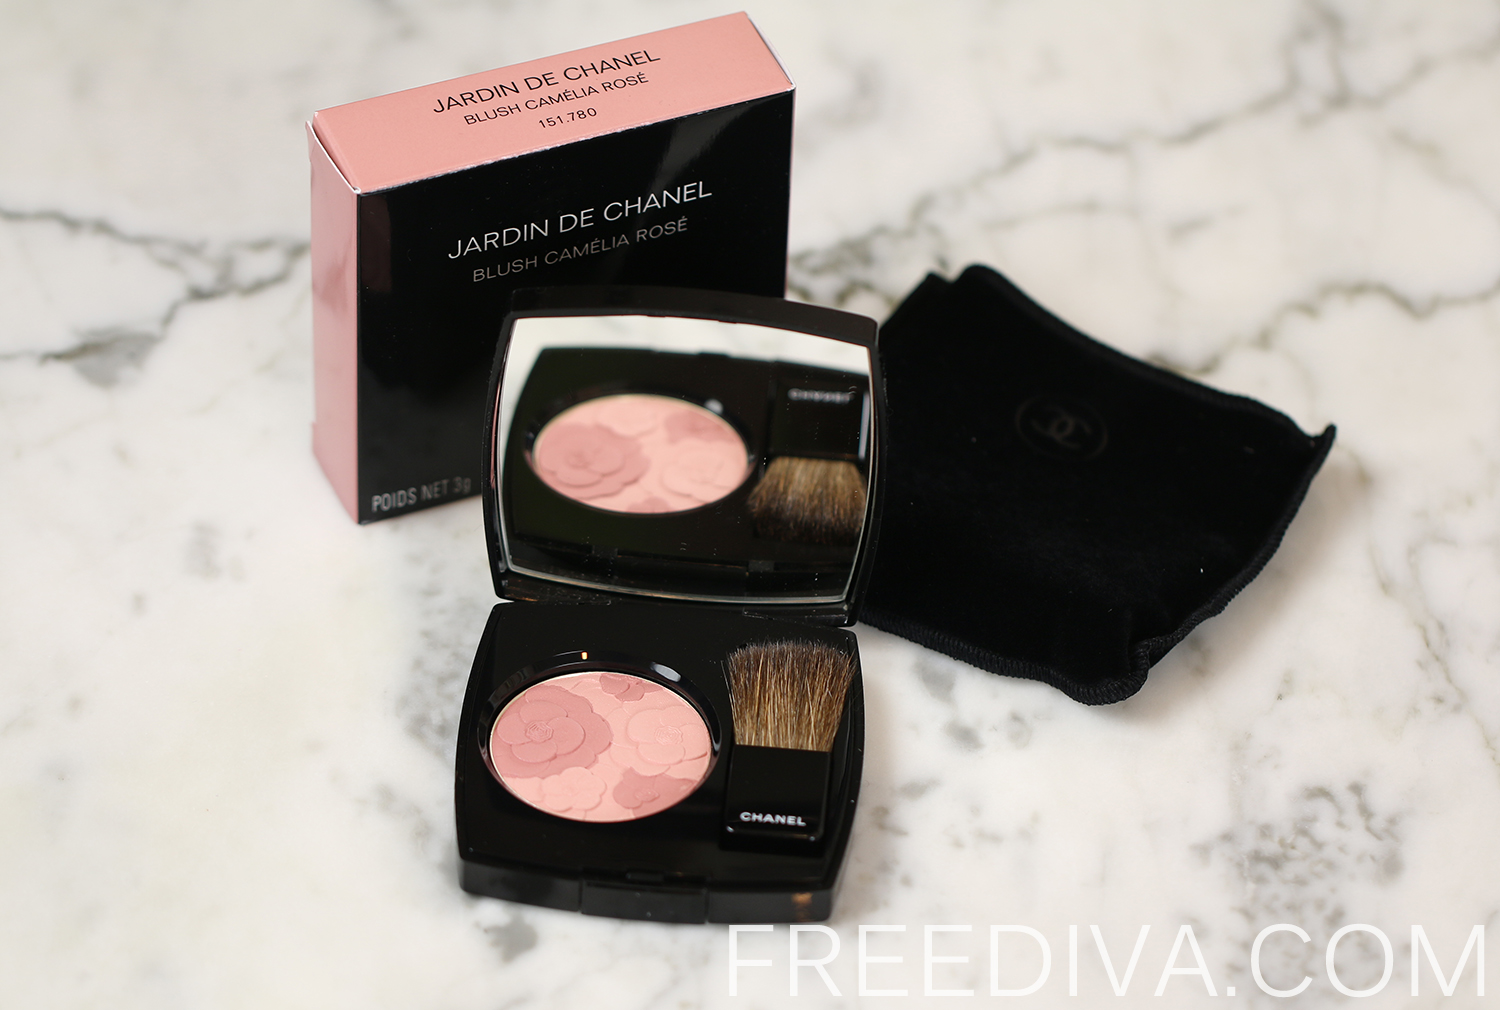 Chanel jardin de chanel blush camelia rose free diva for Jardin de chanel blush 2015 kaufen